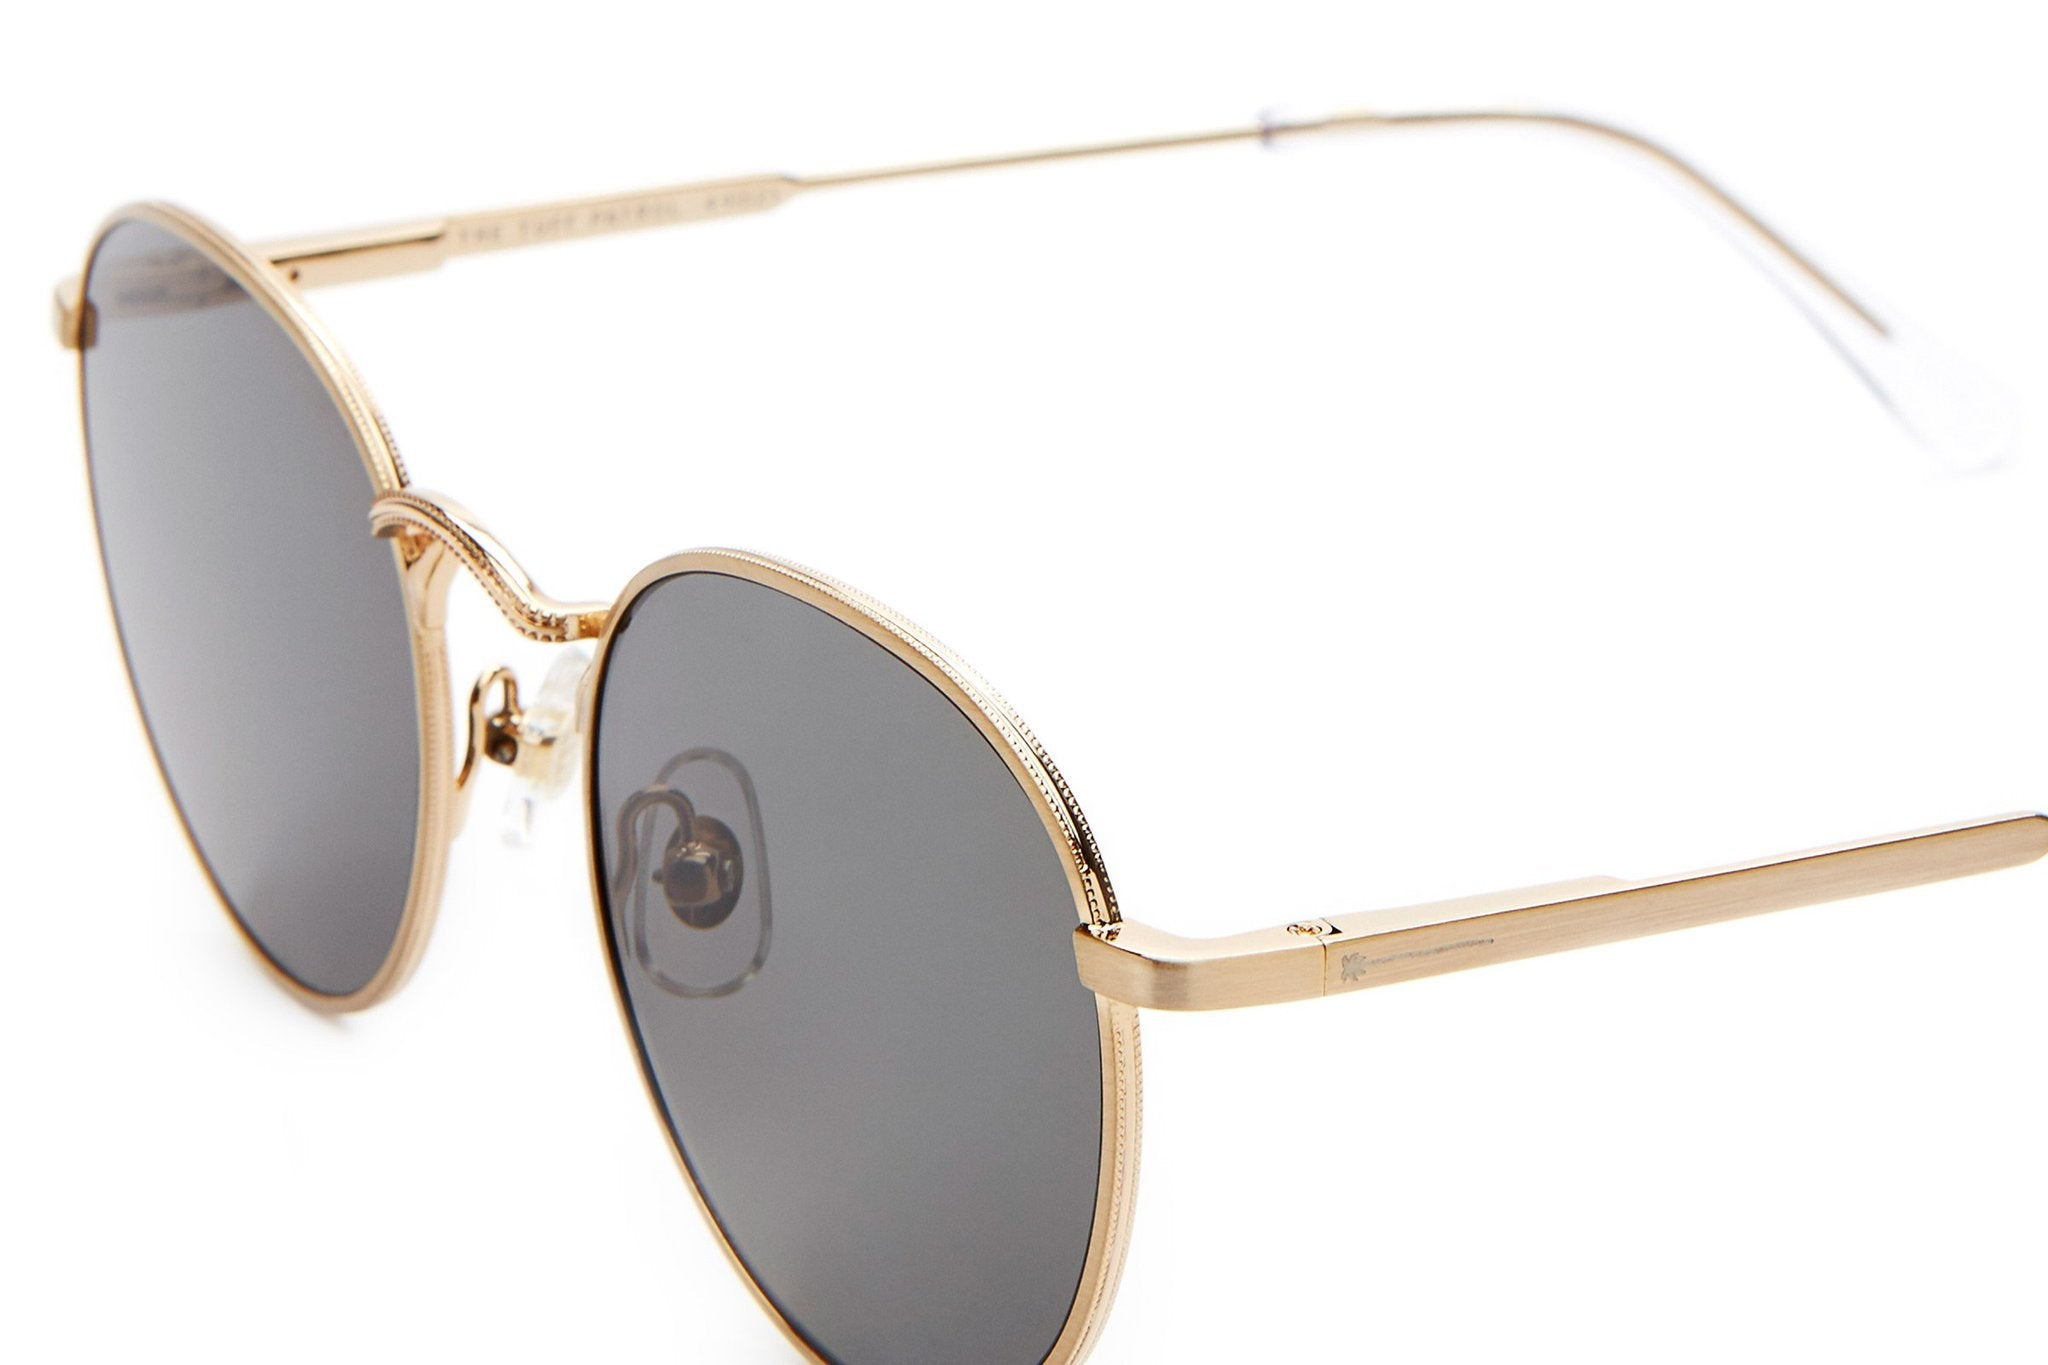 THE TUFF PATROL / BRUSHED GOLD & GREY POLARISED LENS